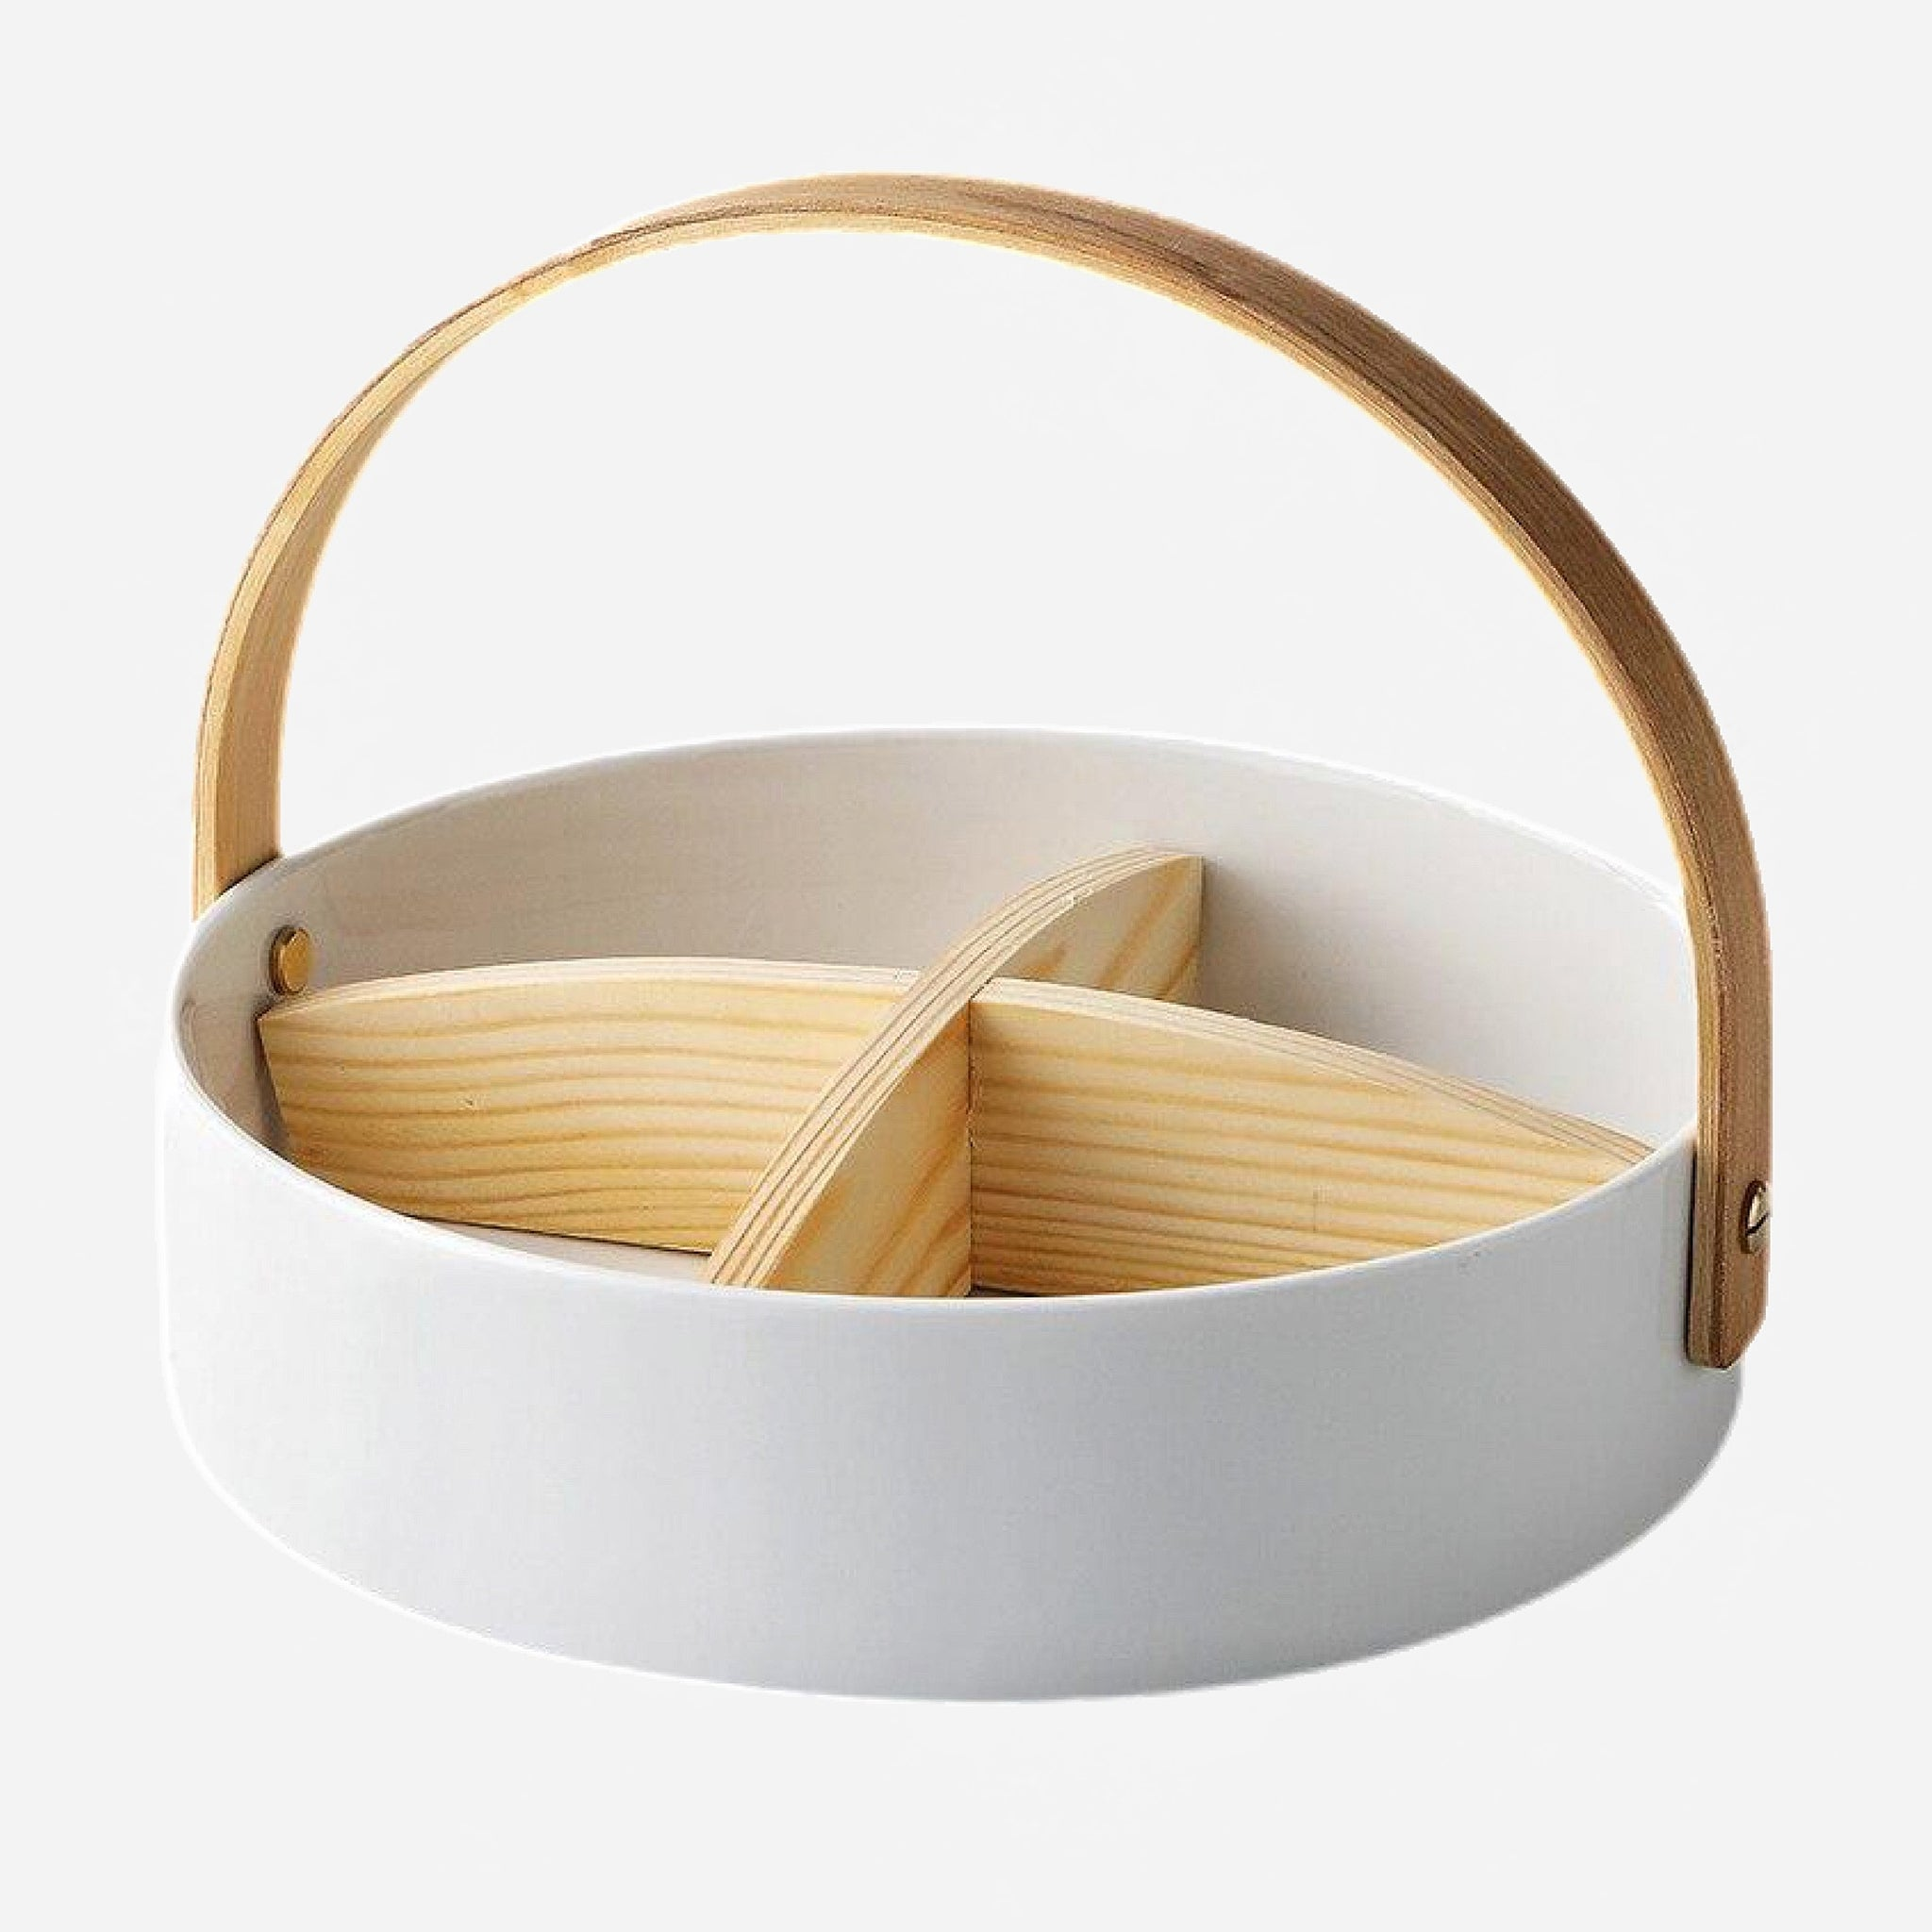 Japanese Ceramic Food Basket Trend